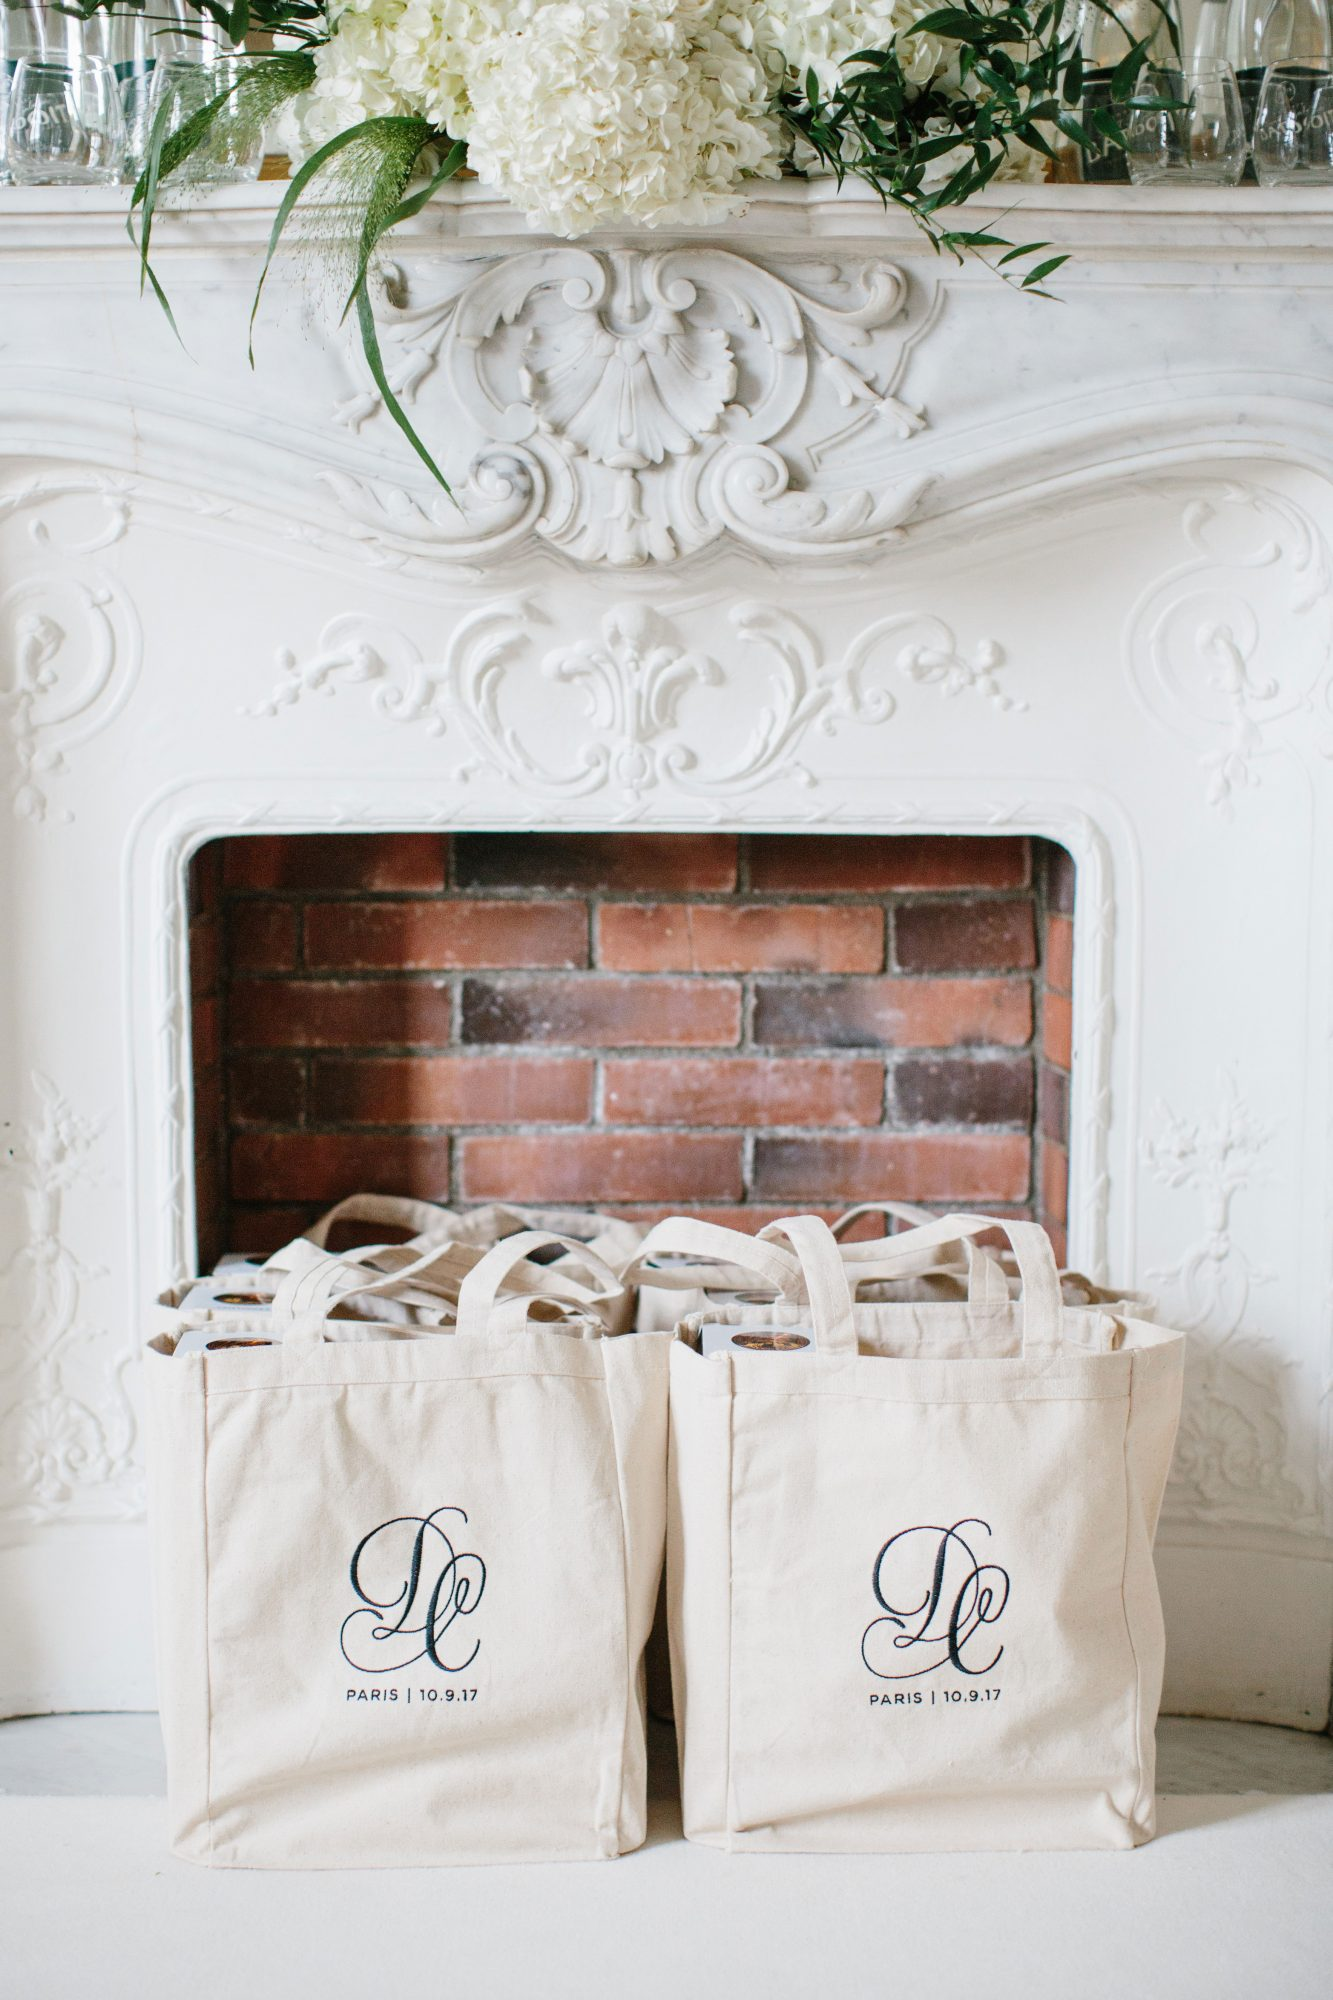 Guests were given welcome bags printed with a logo designed by Kara Anne Paper and stuffed with Sugarfina candy, a few pampering essentials from Primally Pure (one of the bride's favorite brands), an emergency kit, Champagne, Ladurée macarons, a Staub cocotte, and a little book of French phrases.